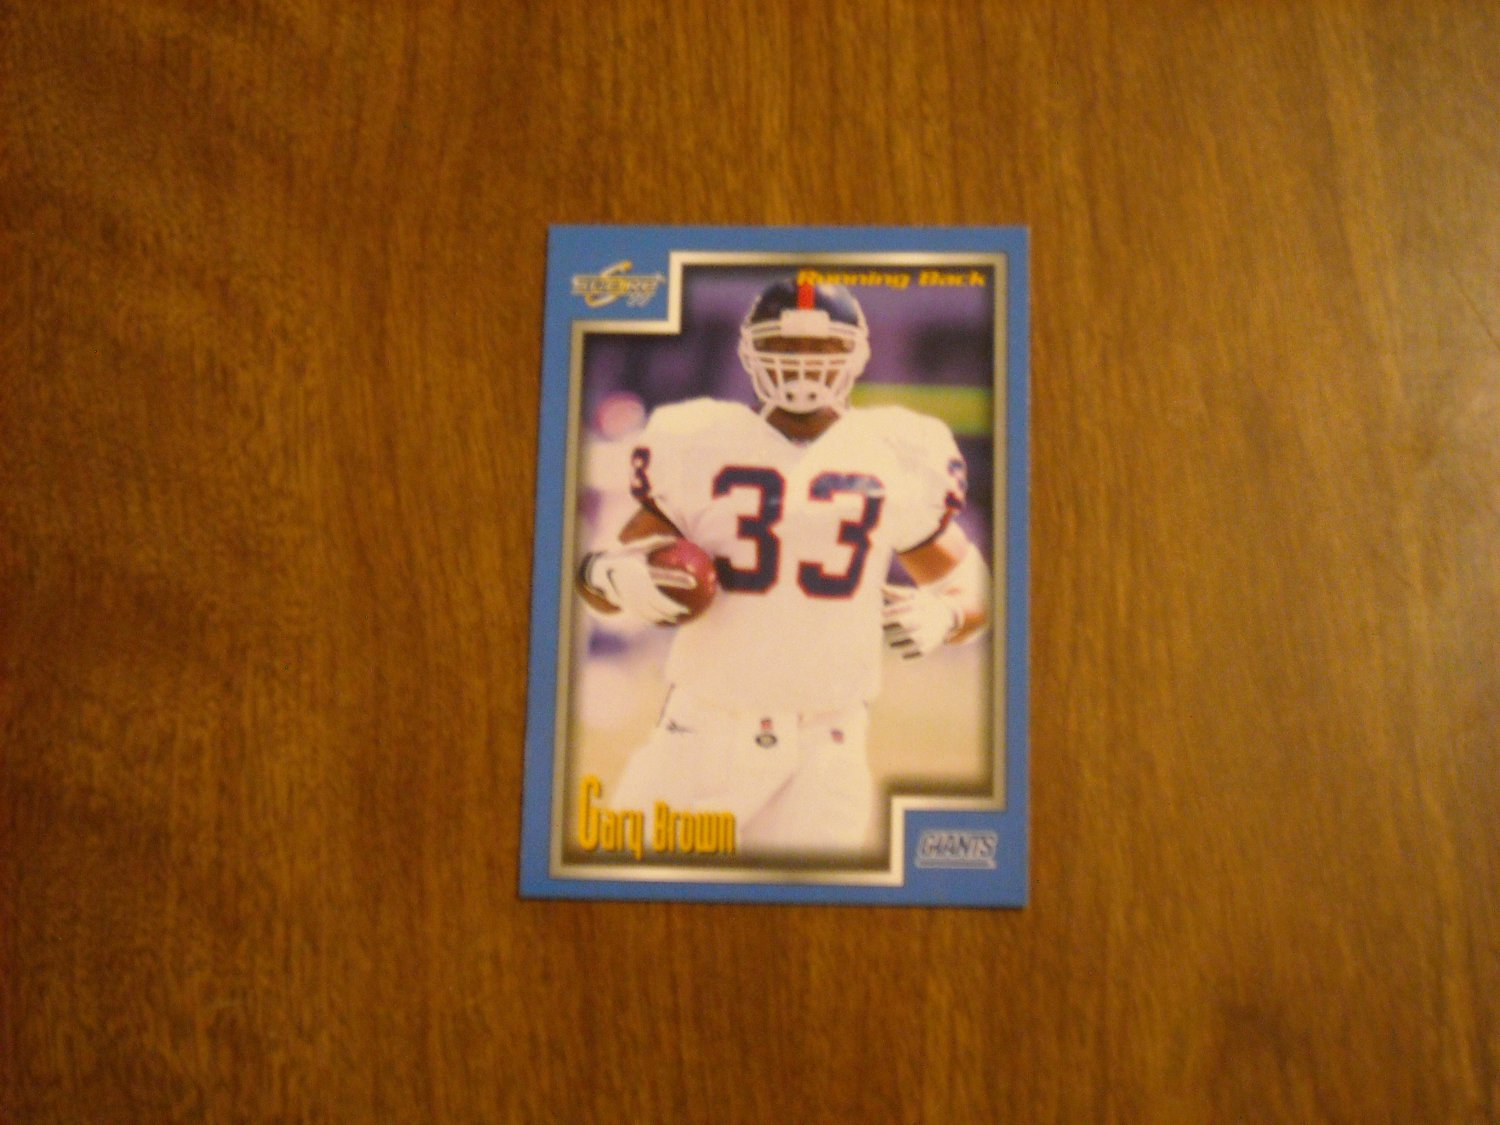 Gary Brown New York Giants RB Card No. 35 - 1999 Score Football Card